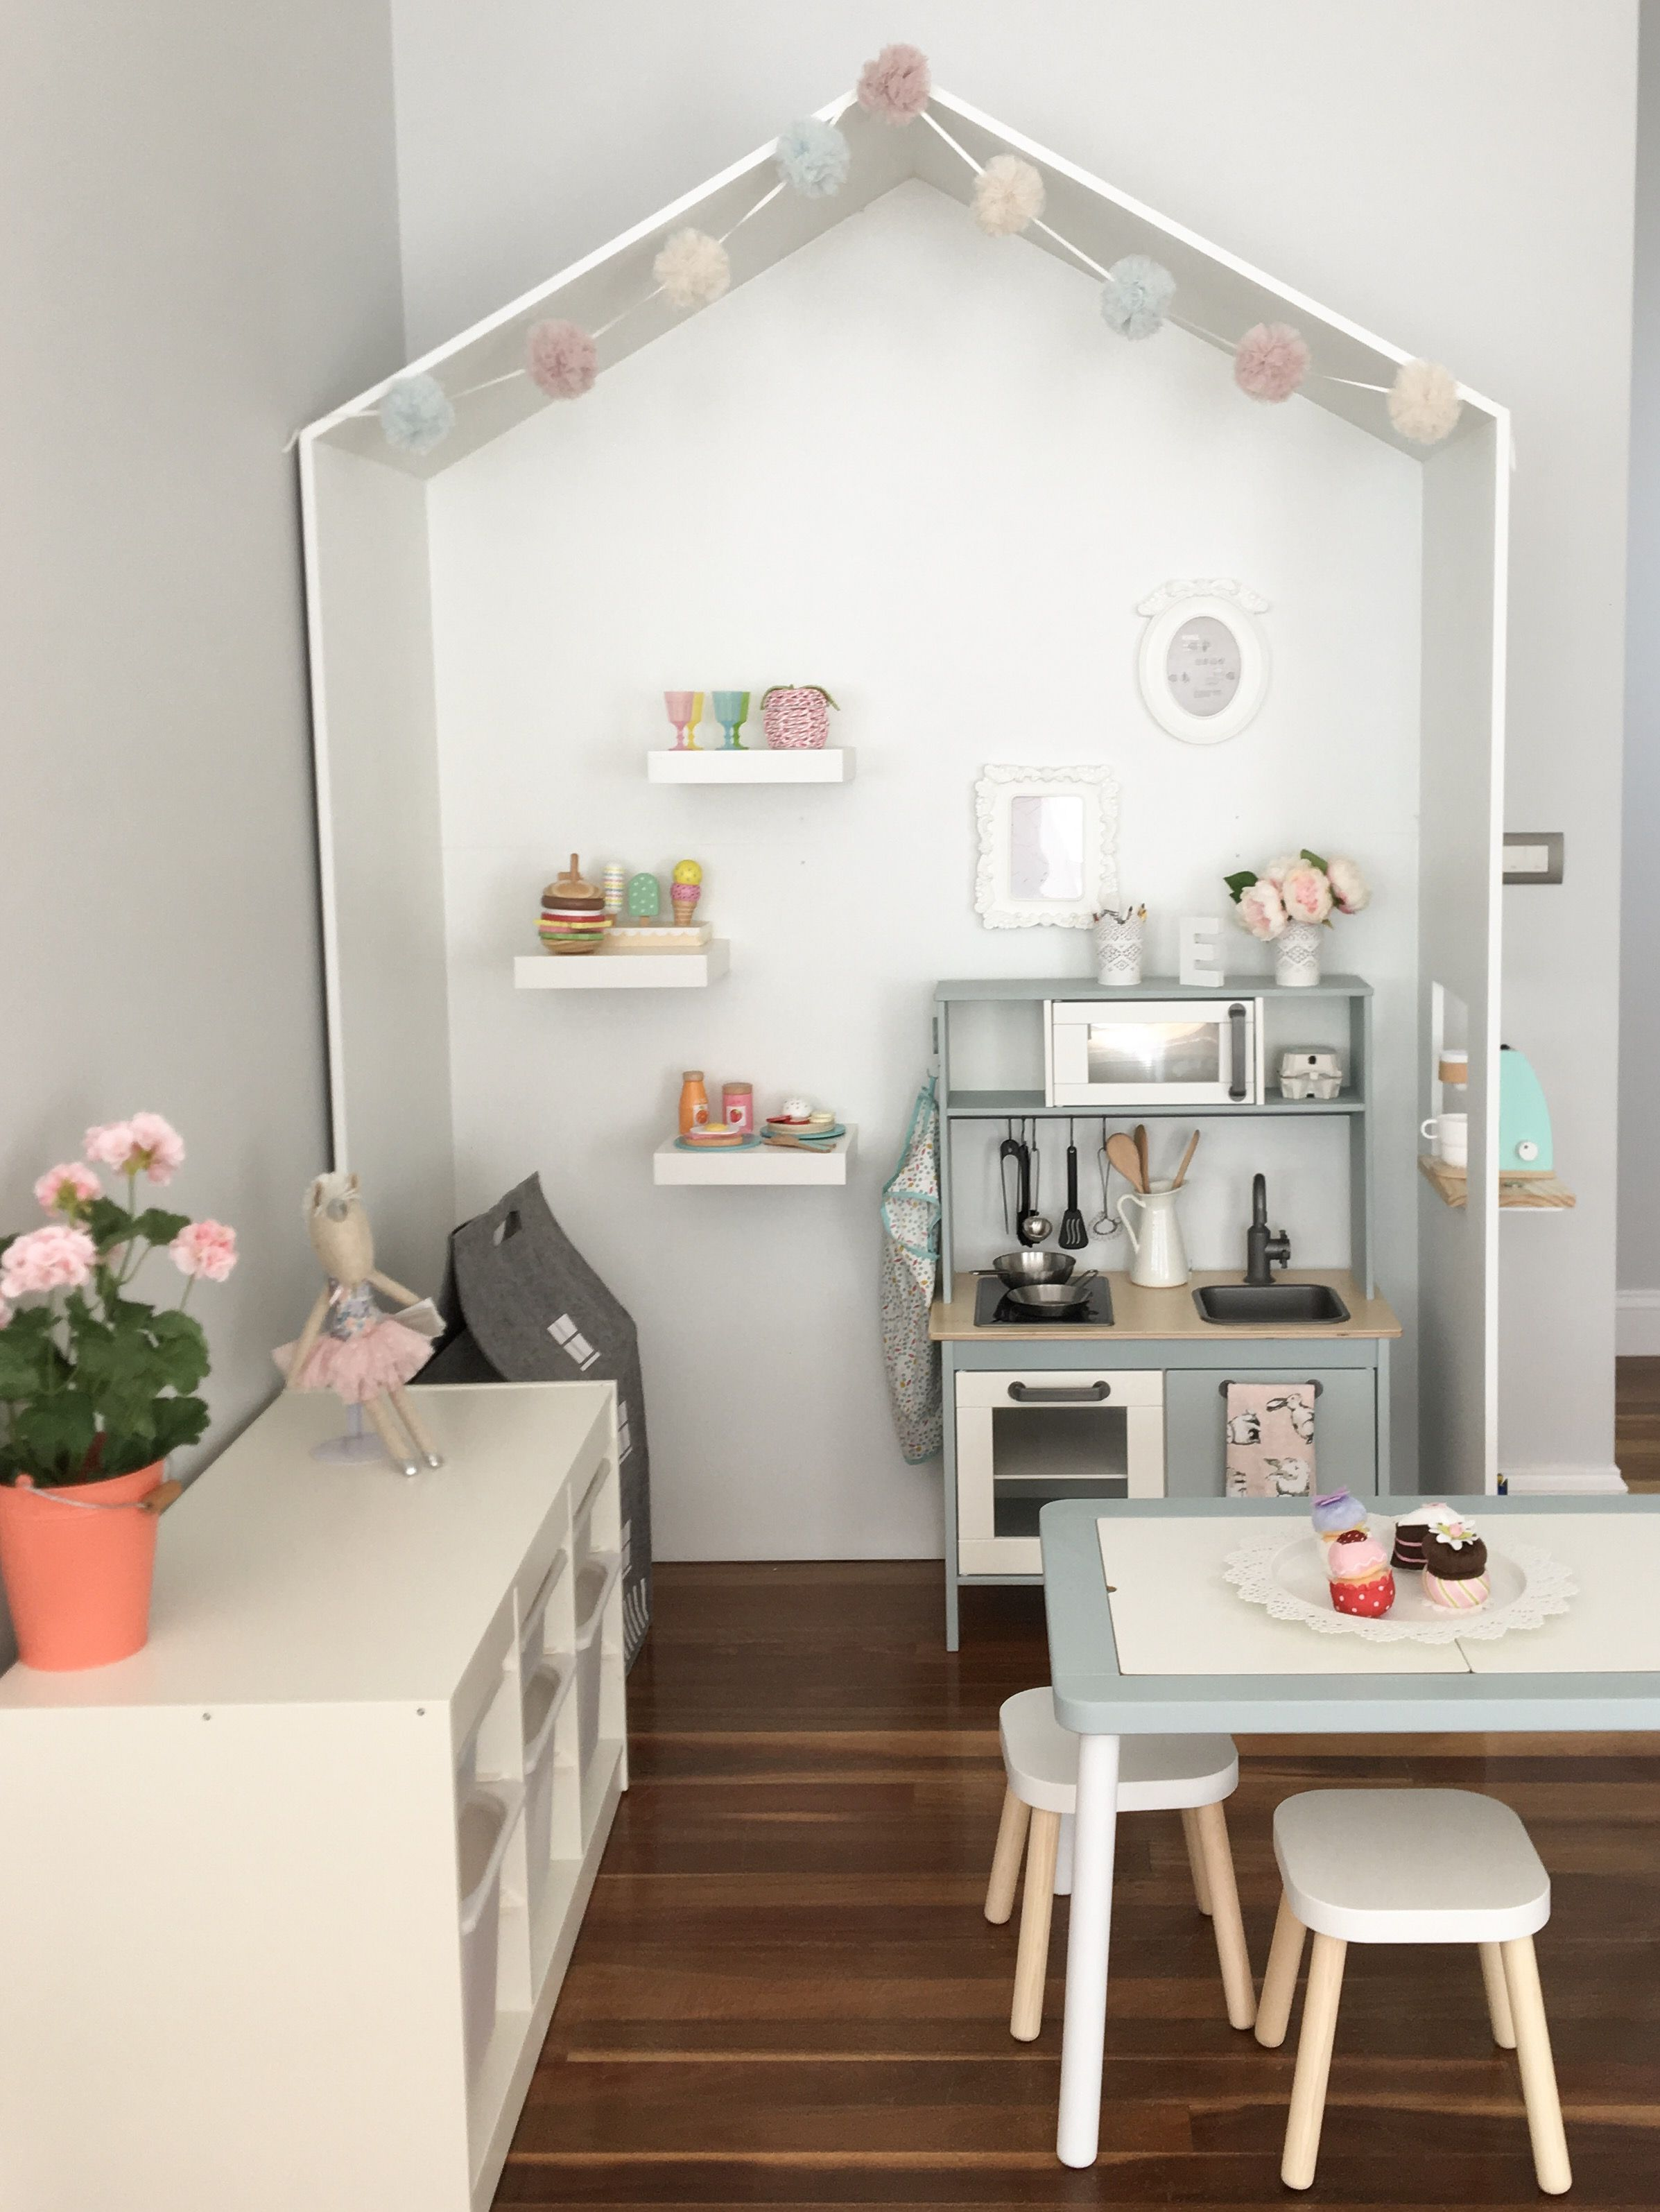 Ikea Play Area Cute Kids Play Area Create By Exult Design Ikea Duktig Kitchen